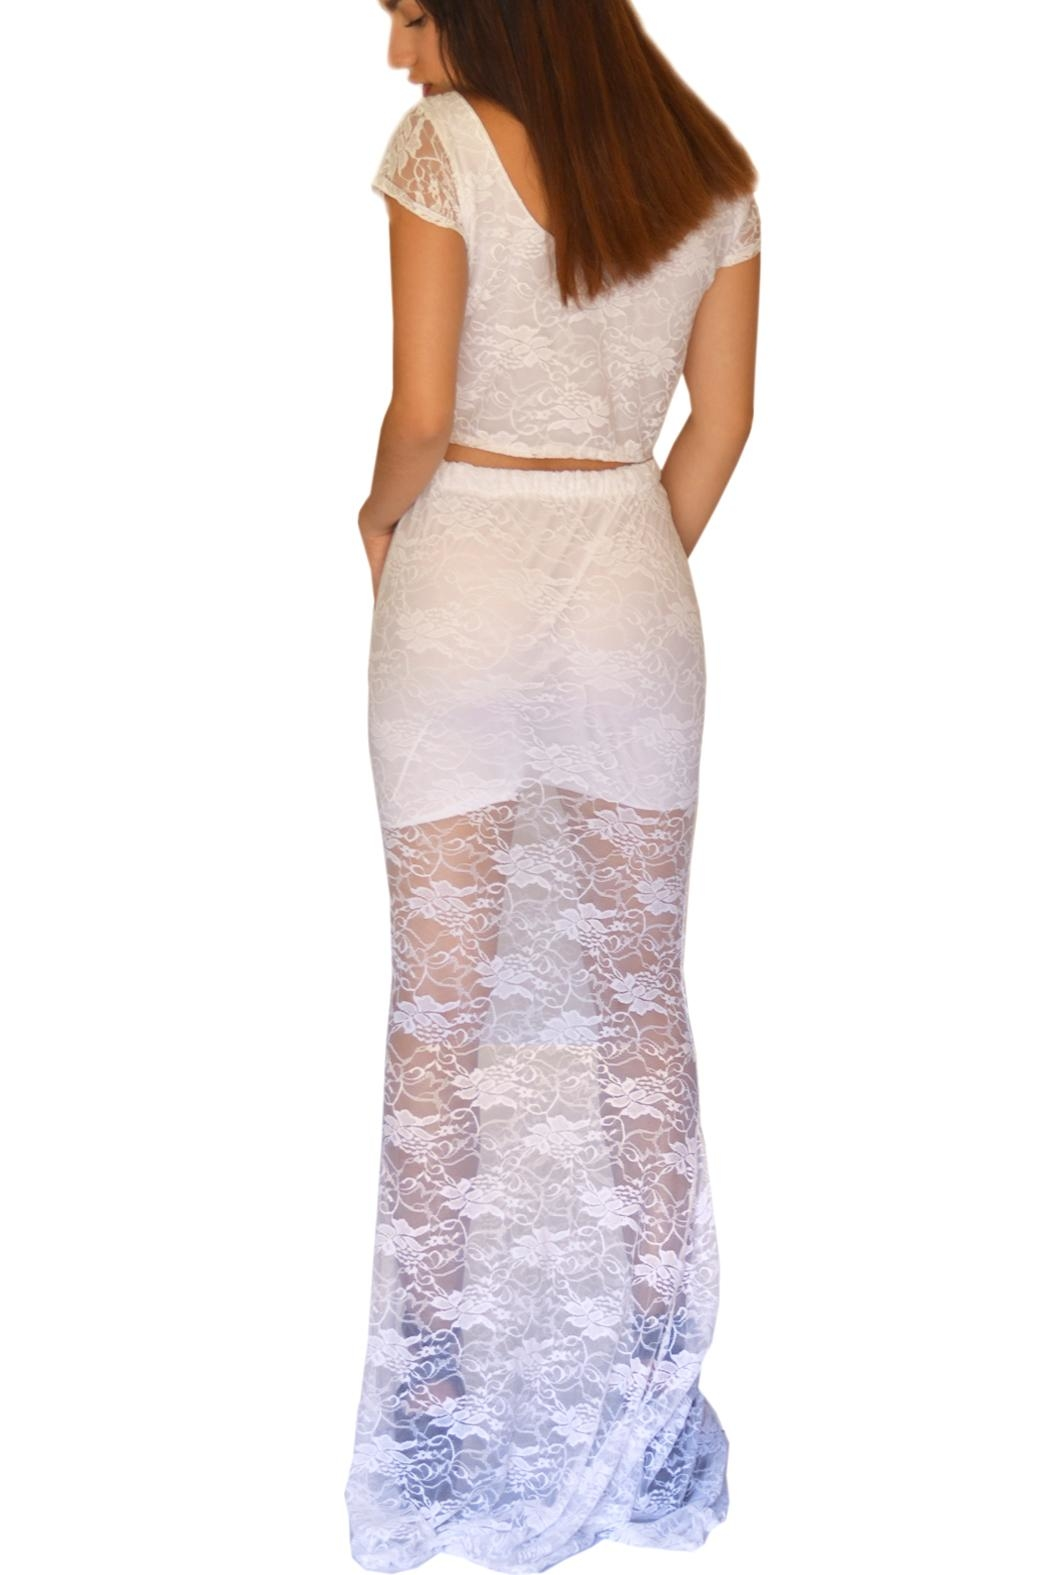 NUINABELOVE Mermaid Lace Skirt - Side Cropped Image